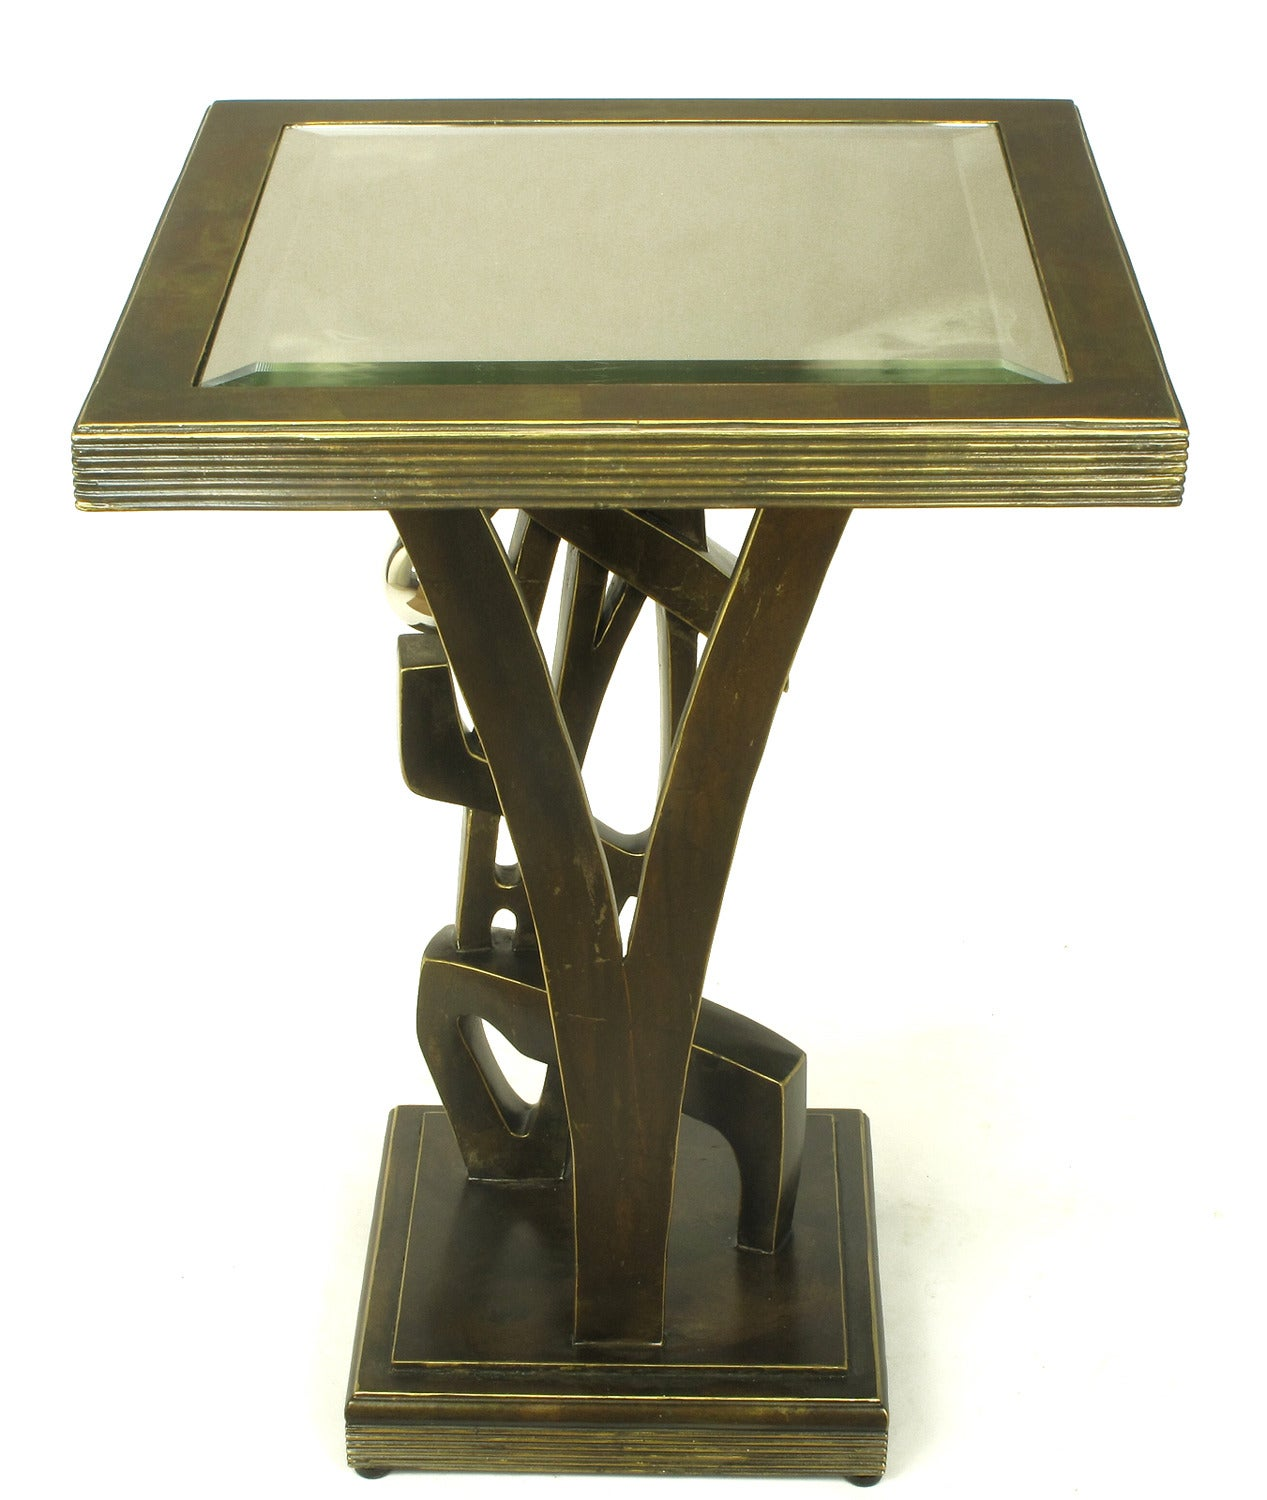 Late 20th Century Bronzed Metal and Resin Artisan Sculpture Side Table with Chrome Ball For Sale